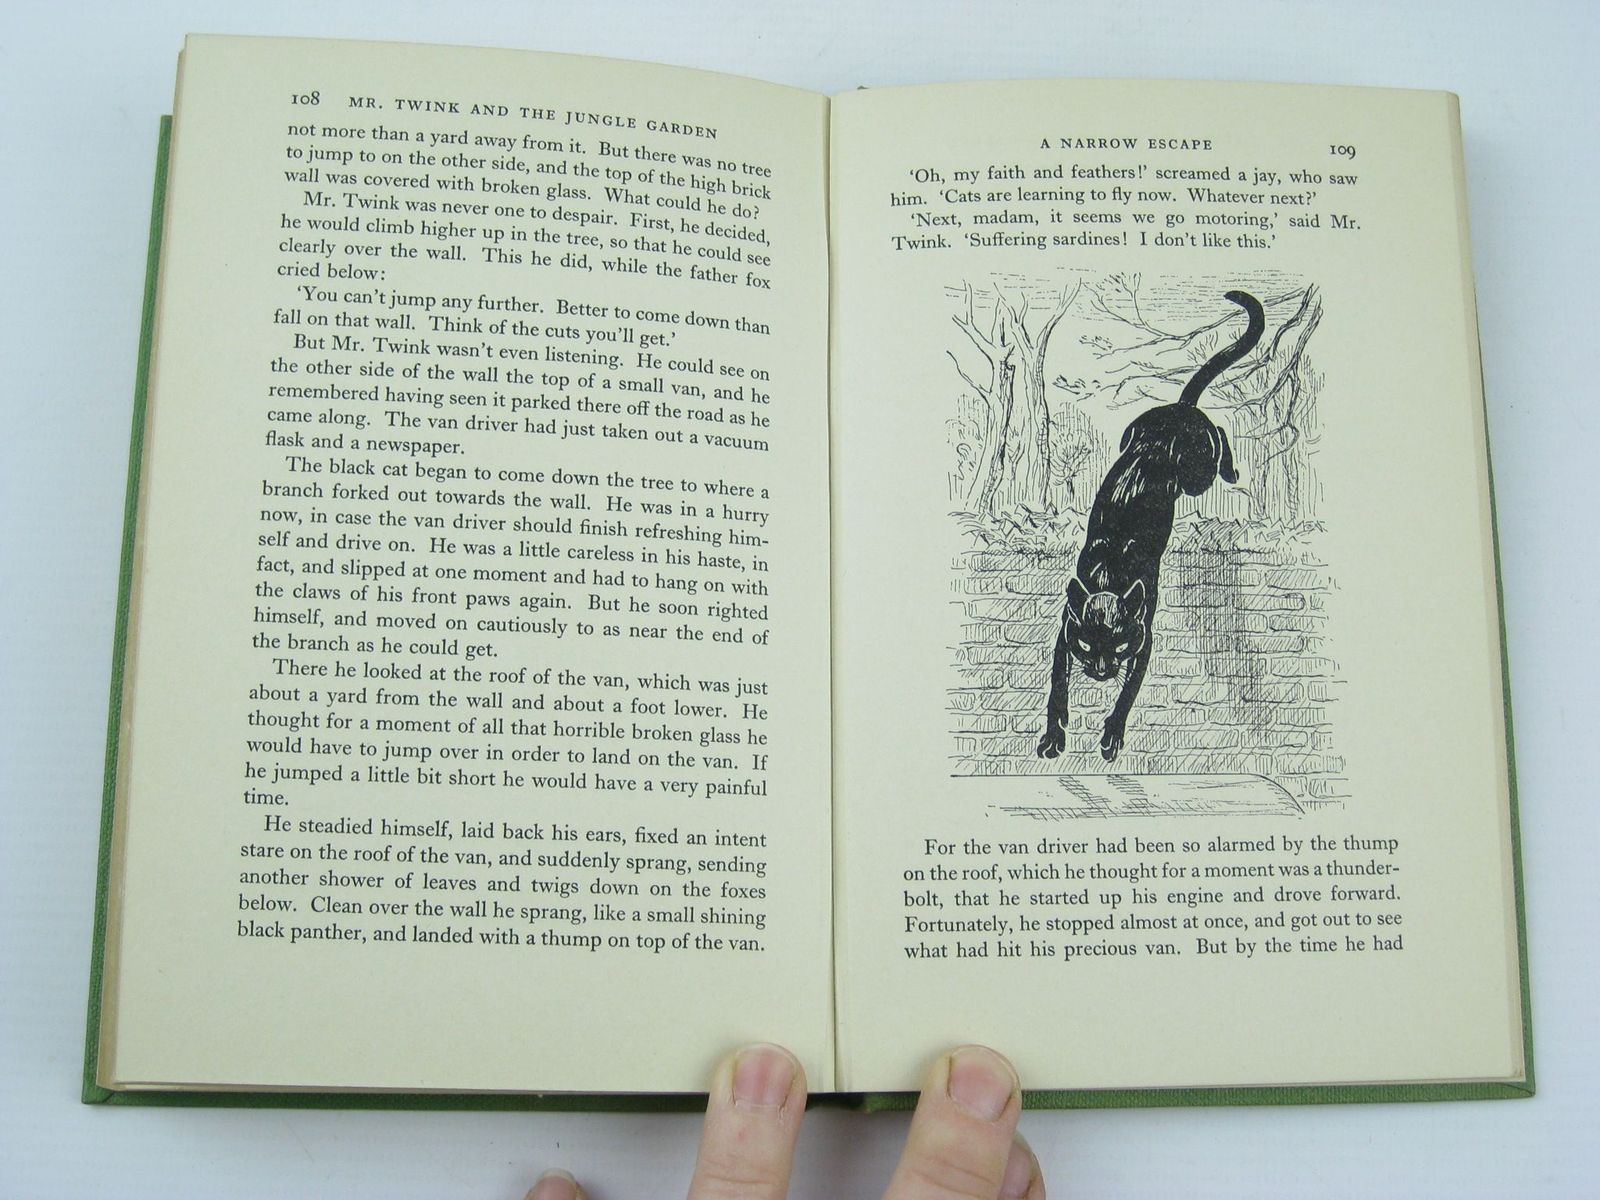 Photo of MR. TWINK AND THE JUNGLE GARDEN written by Hurt, Freda illustrated by Langley, Nina Scott published by The Epworth Press (STOCK CODE: 1311027)  for sale by Stella & Rose's Books